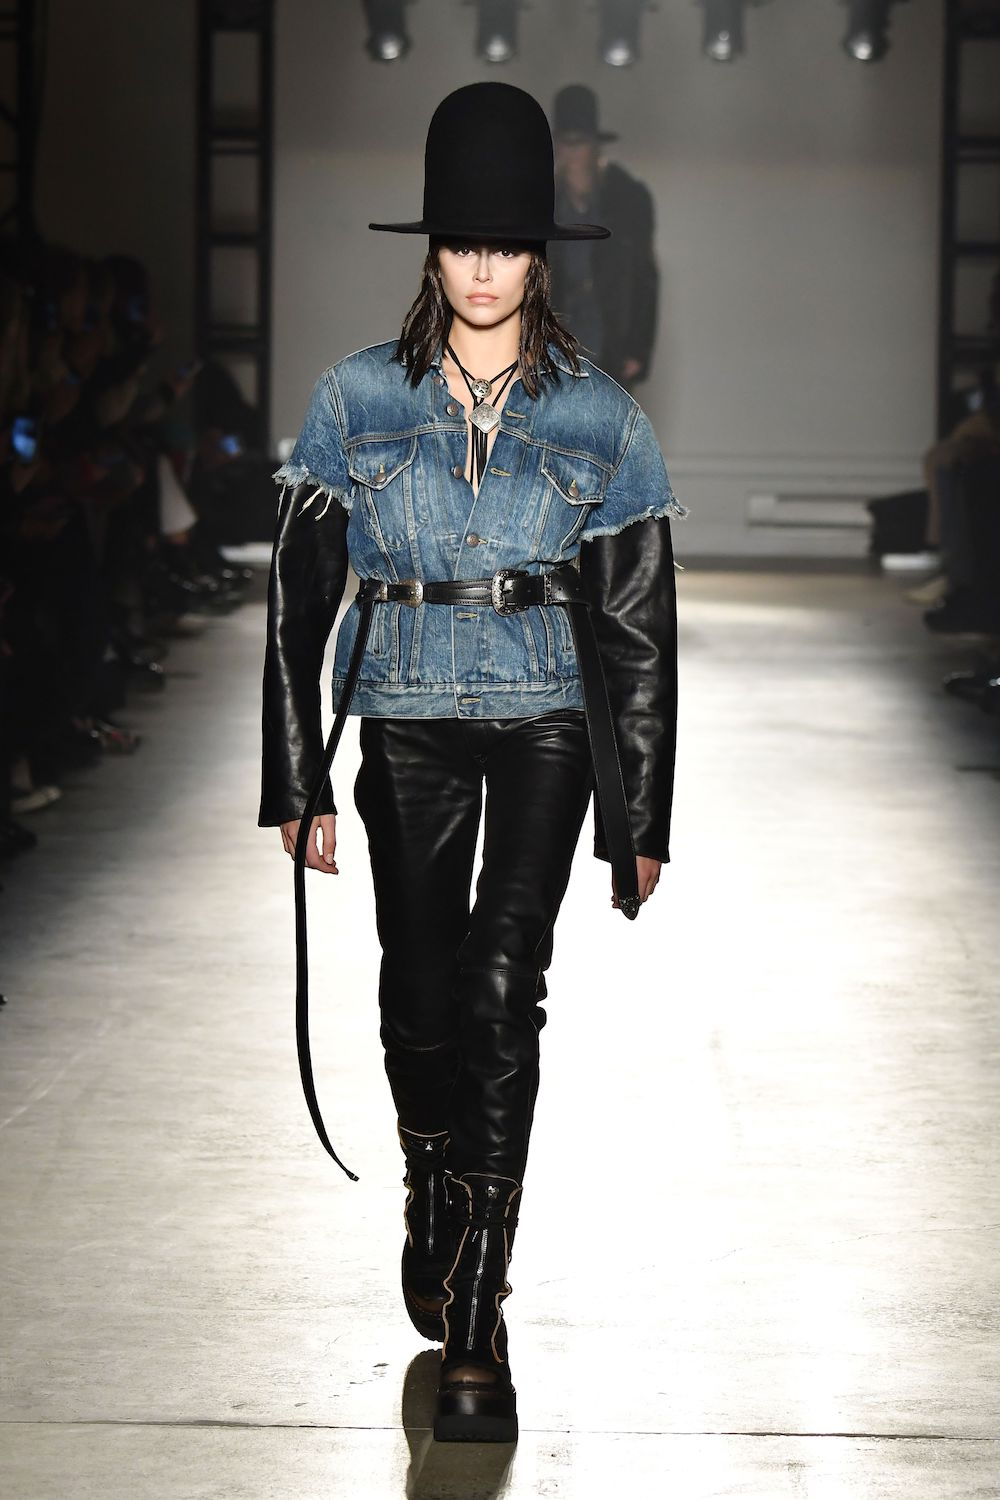 Fashion search engine Tagwalk's new report shows the growing popularity of sustainable denim in luxury fashion Fall/Winter 2020 collections.